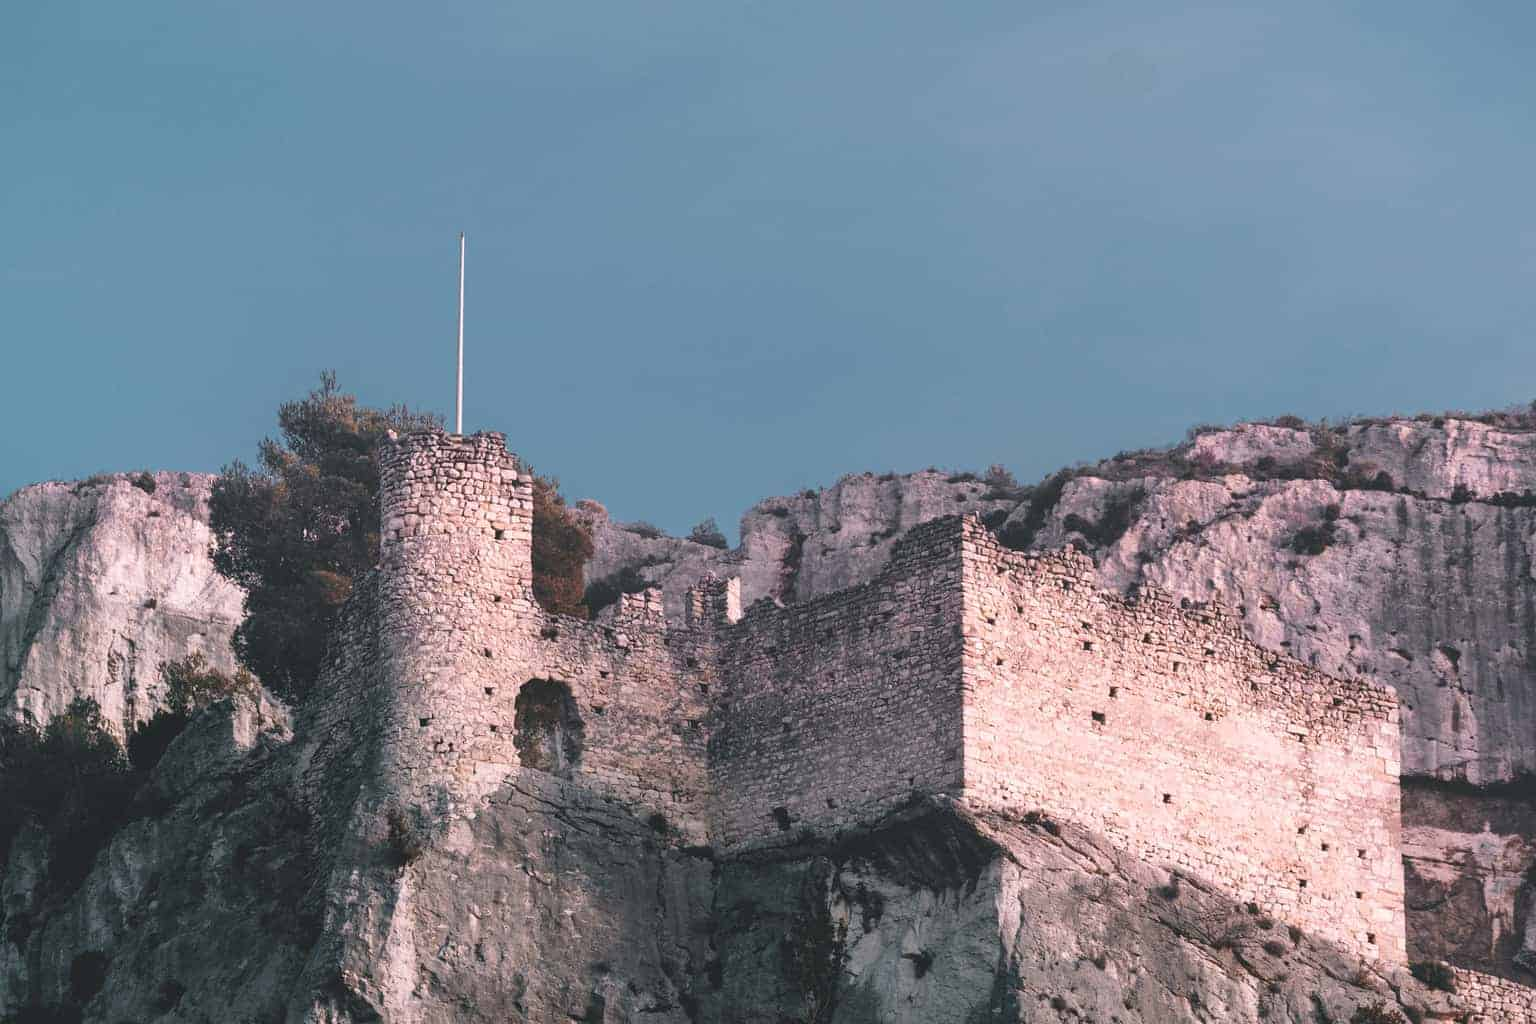 Secret castles in Provence – 10 Hilltop Ruins to Discover in France